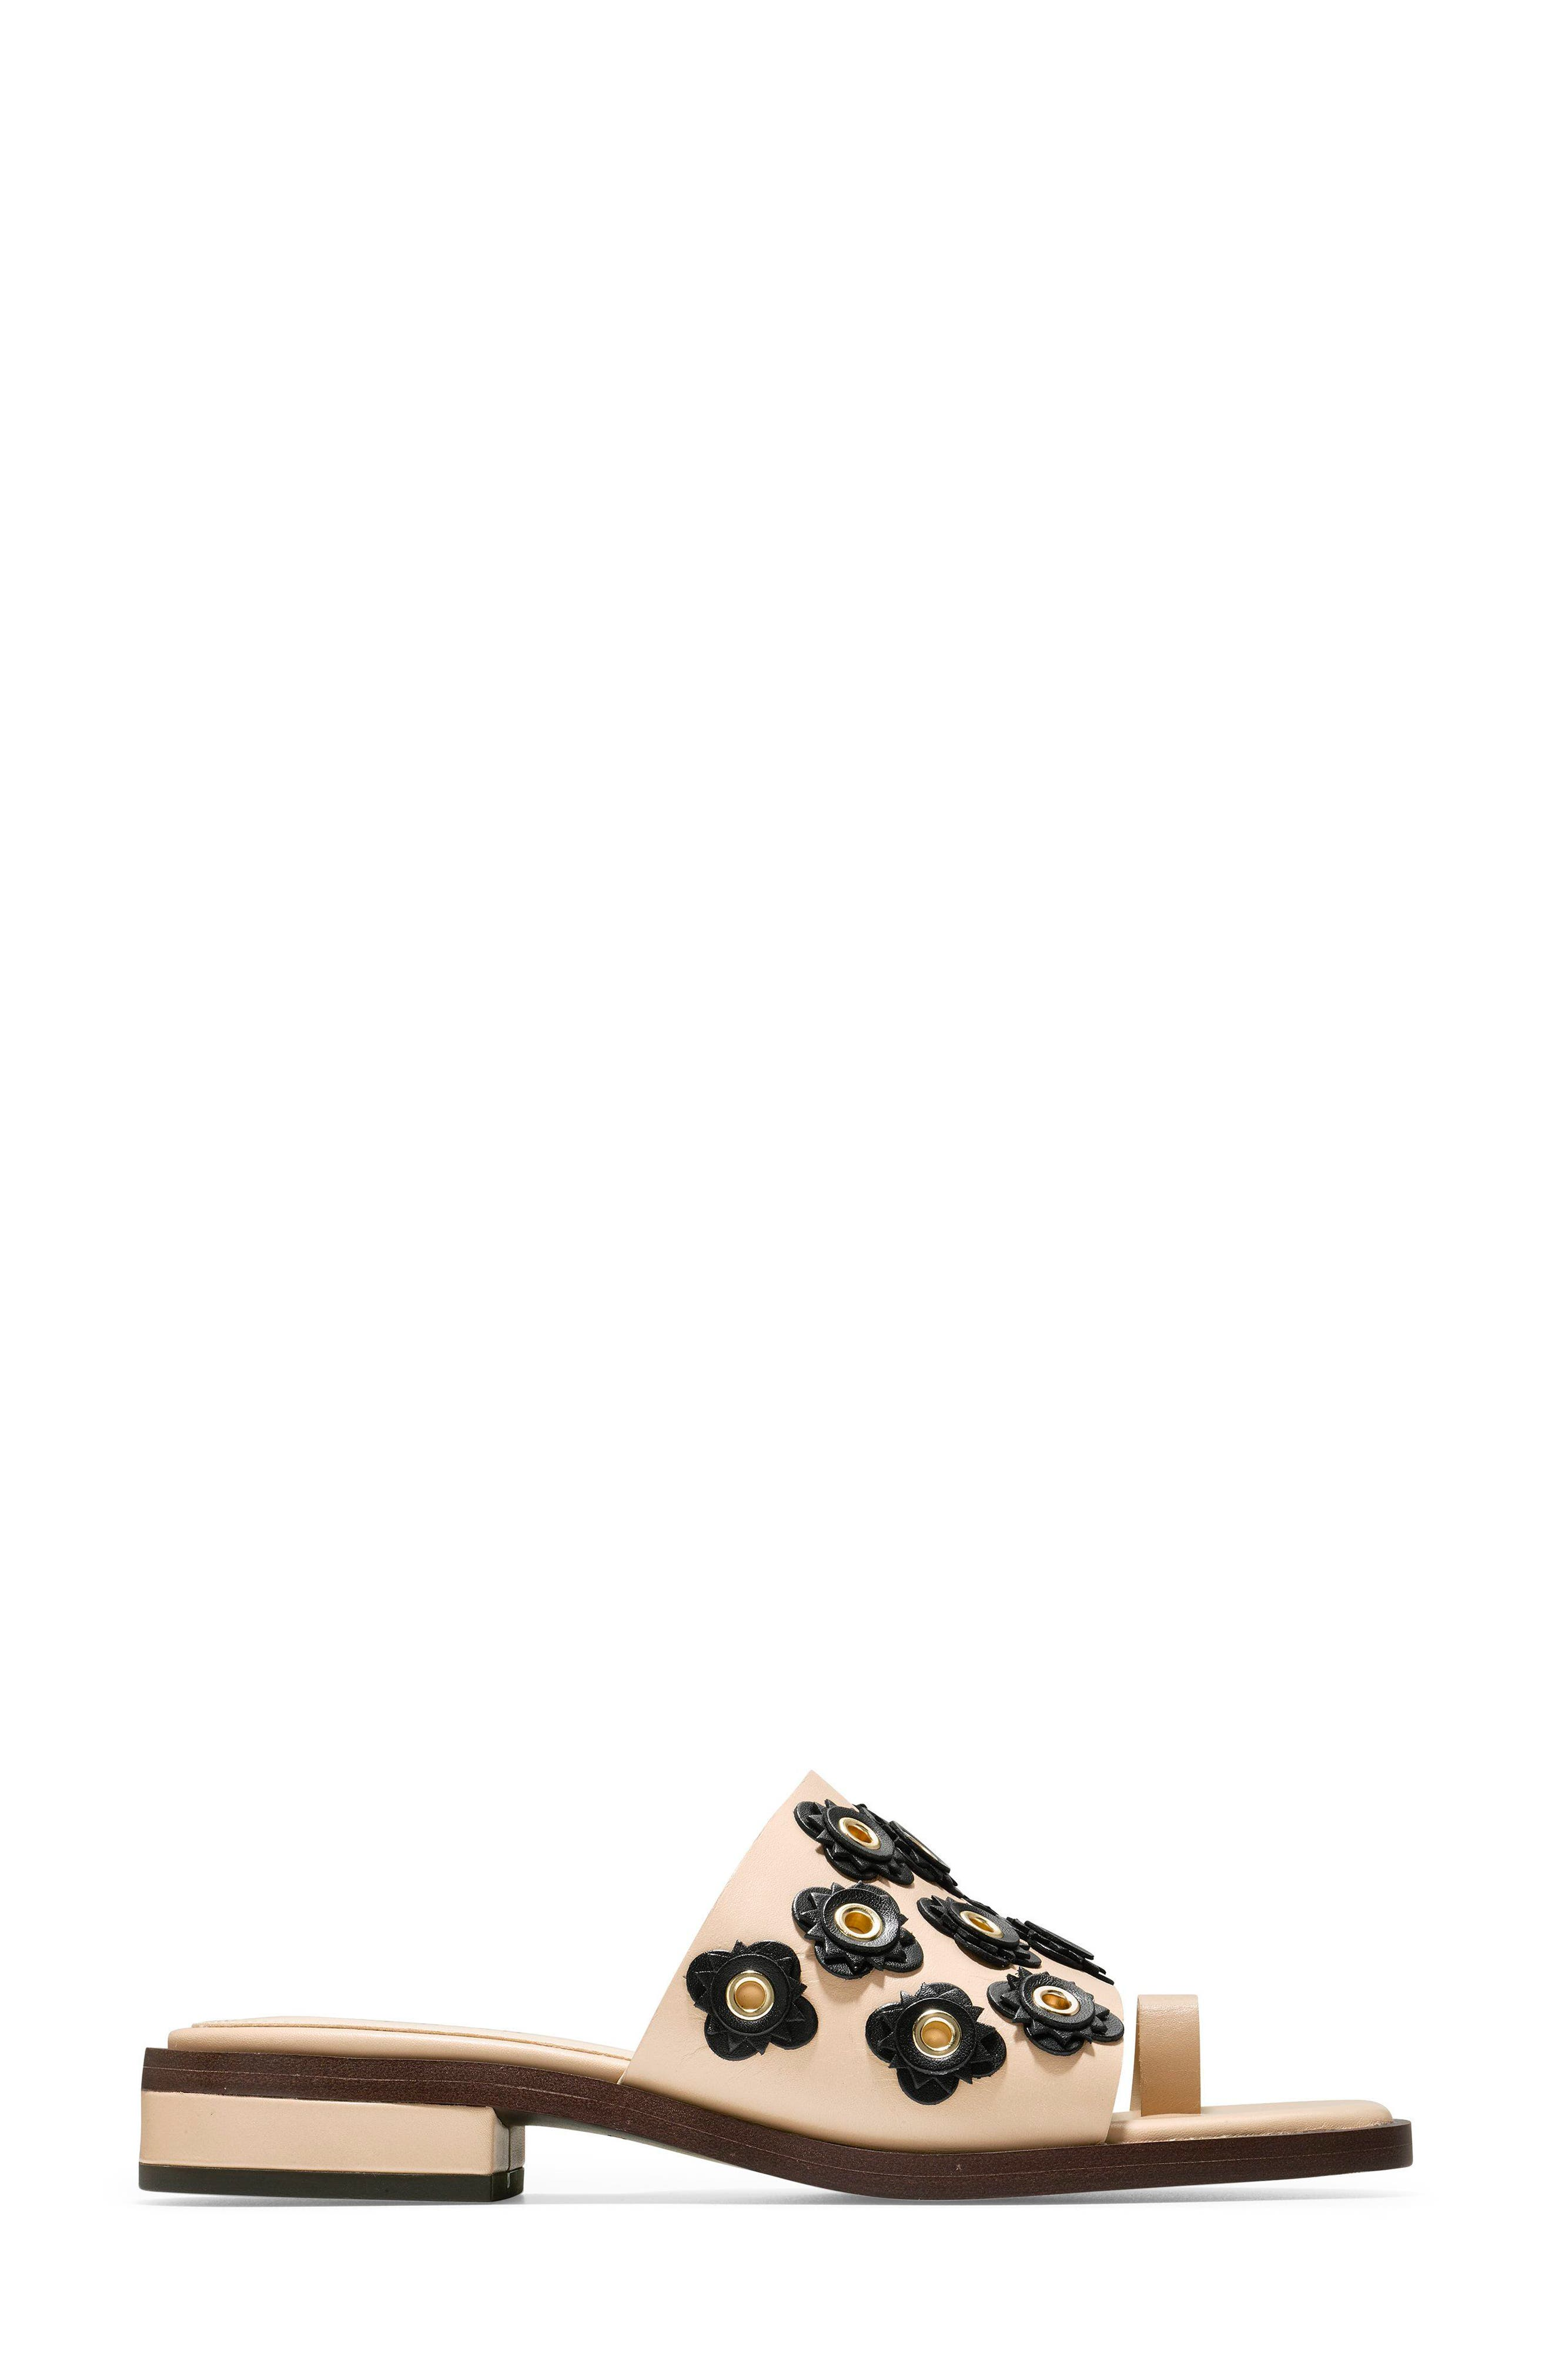 Carly Floral Sandal,                             Alternate thumbnail 3, color,                             Nude/ Black Leather